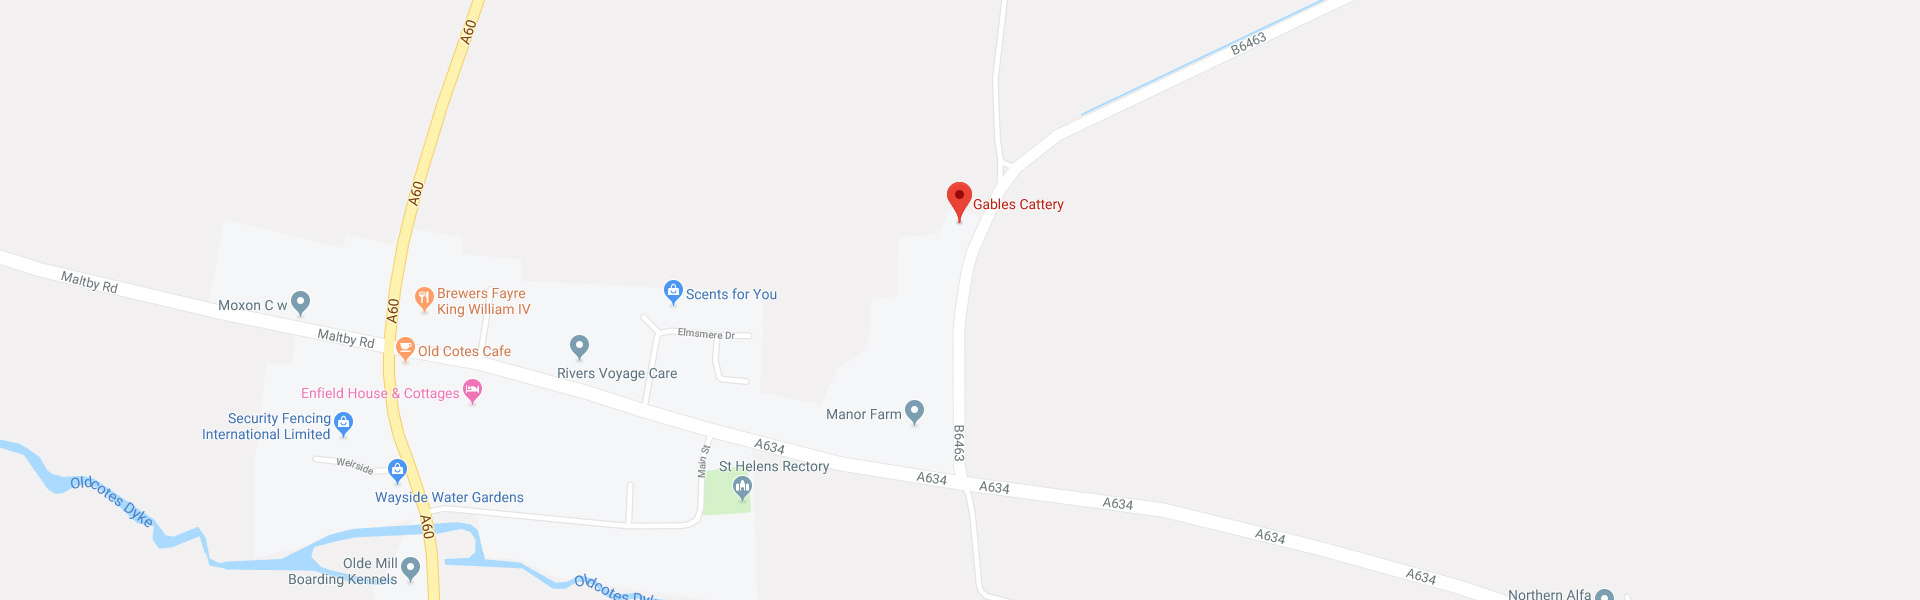 Contact and Location Map for Gables Cattery in Worksop